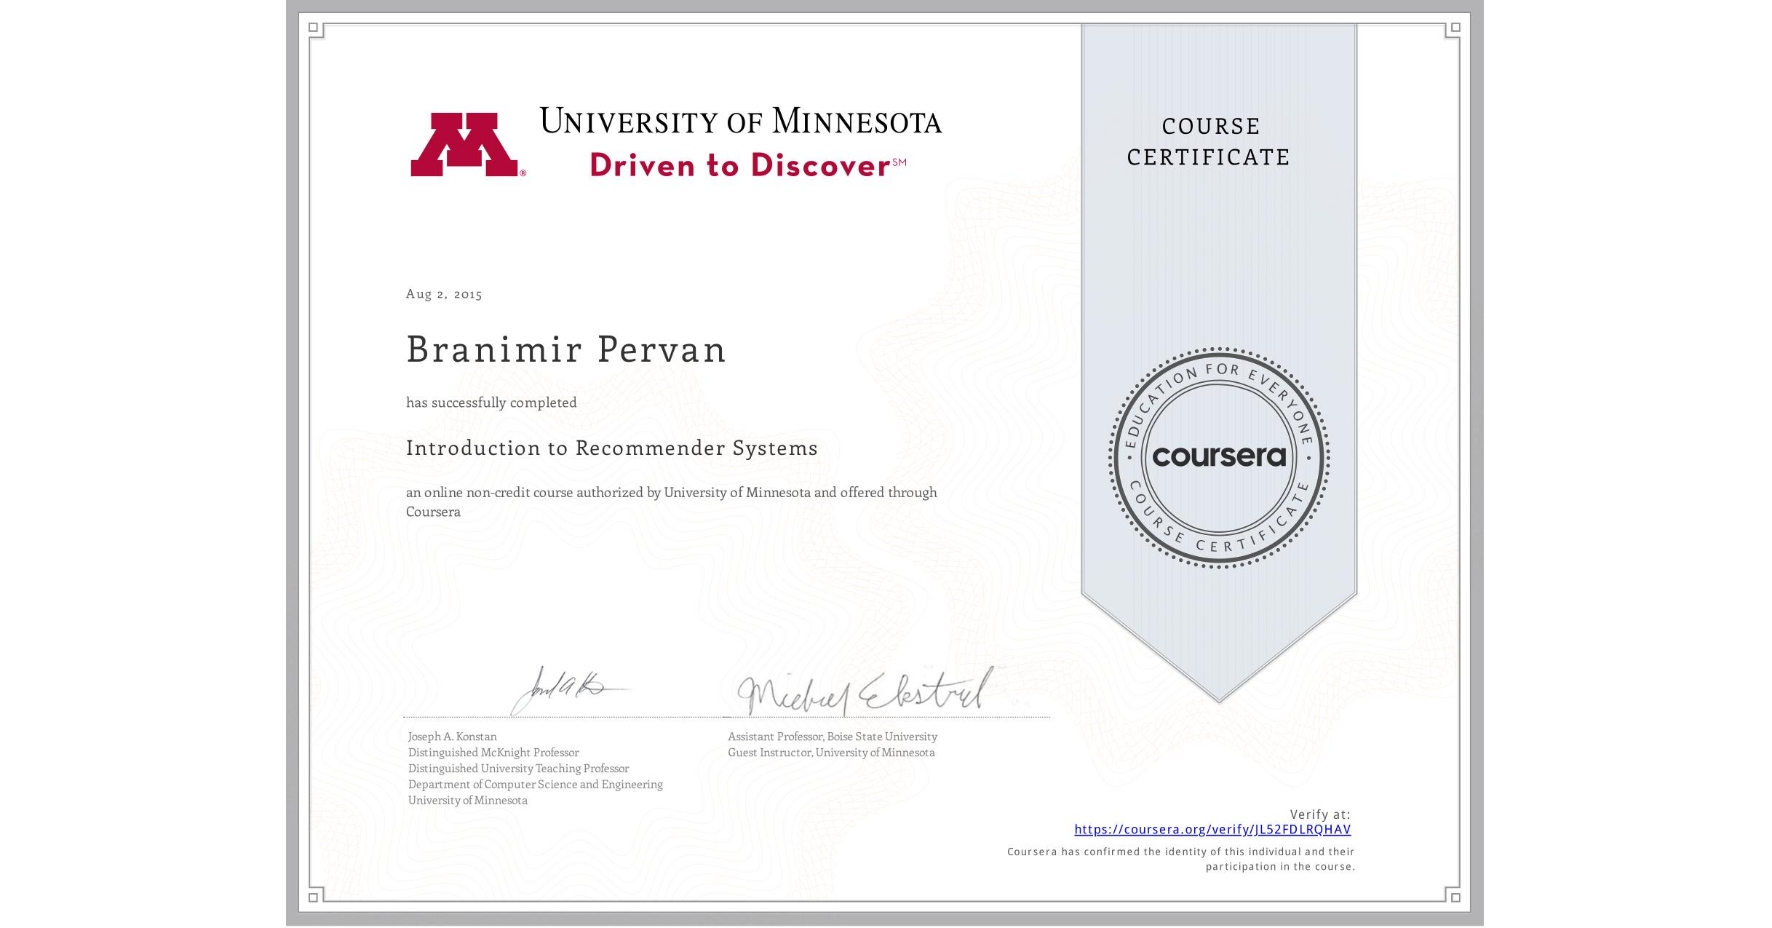 View certificate for Branimir Pervan, Introduction to Recommender Systems, an online non-credit course authorized by University of Minnesota and offered through Coursera